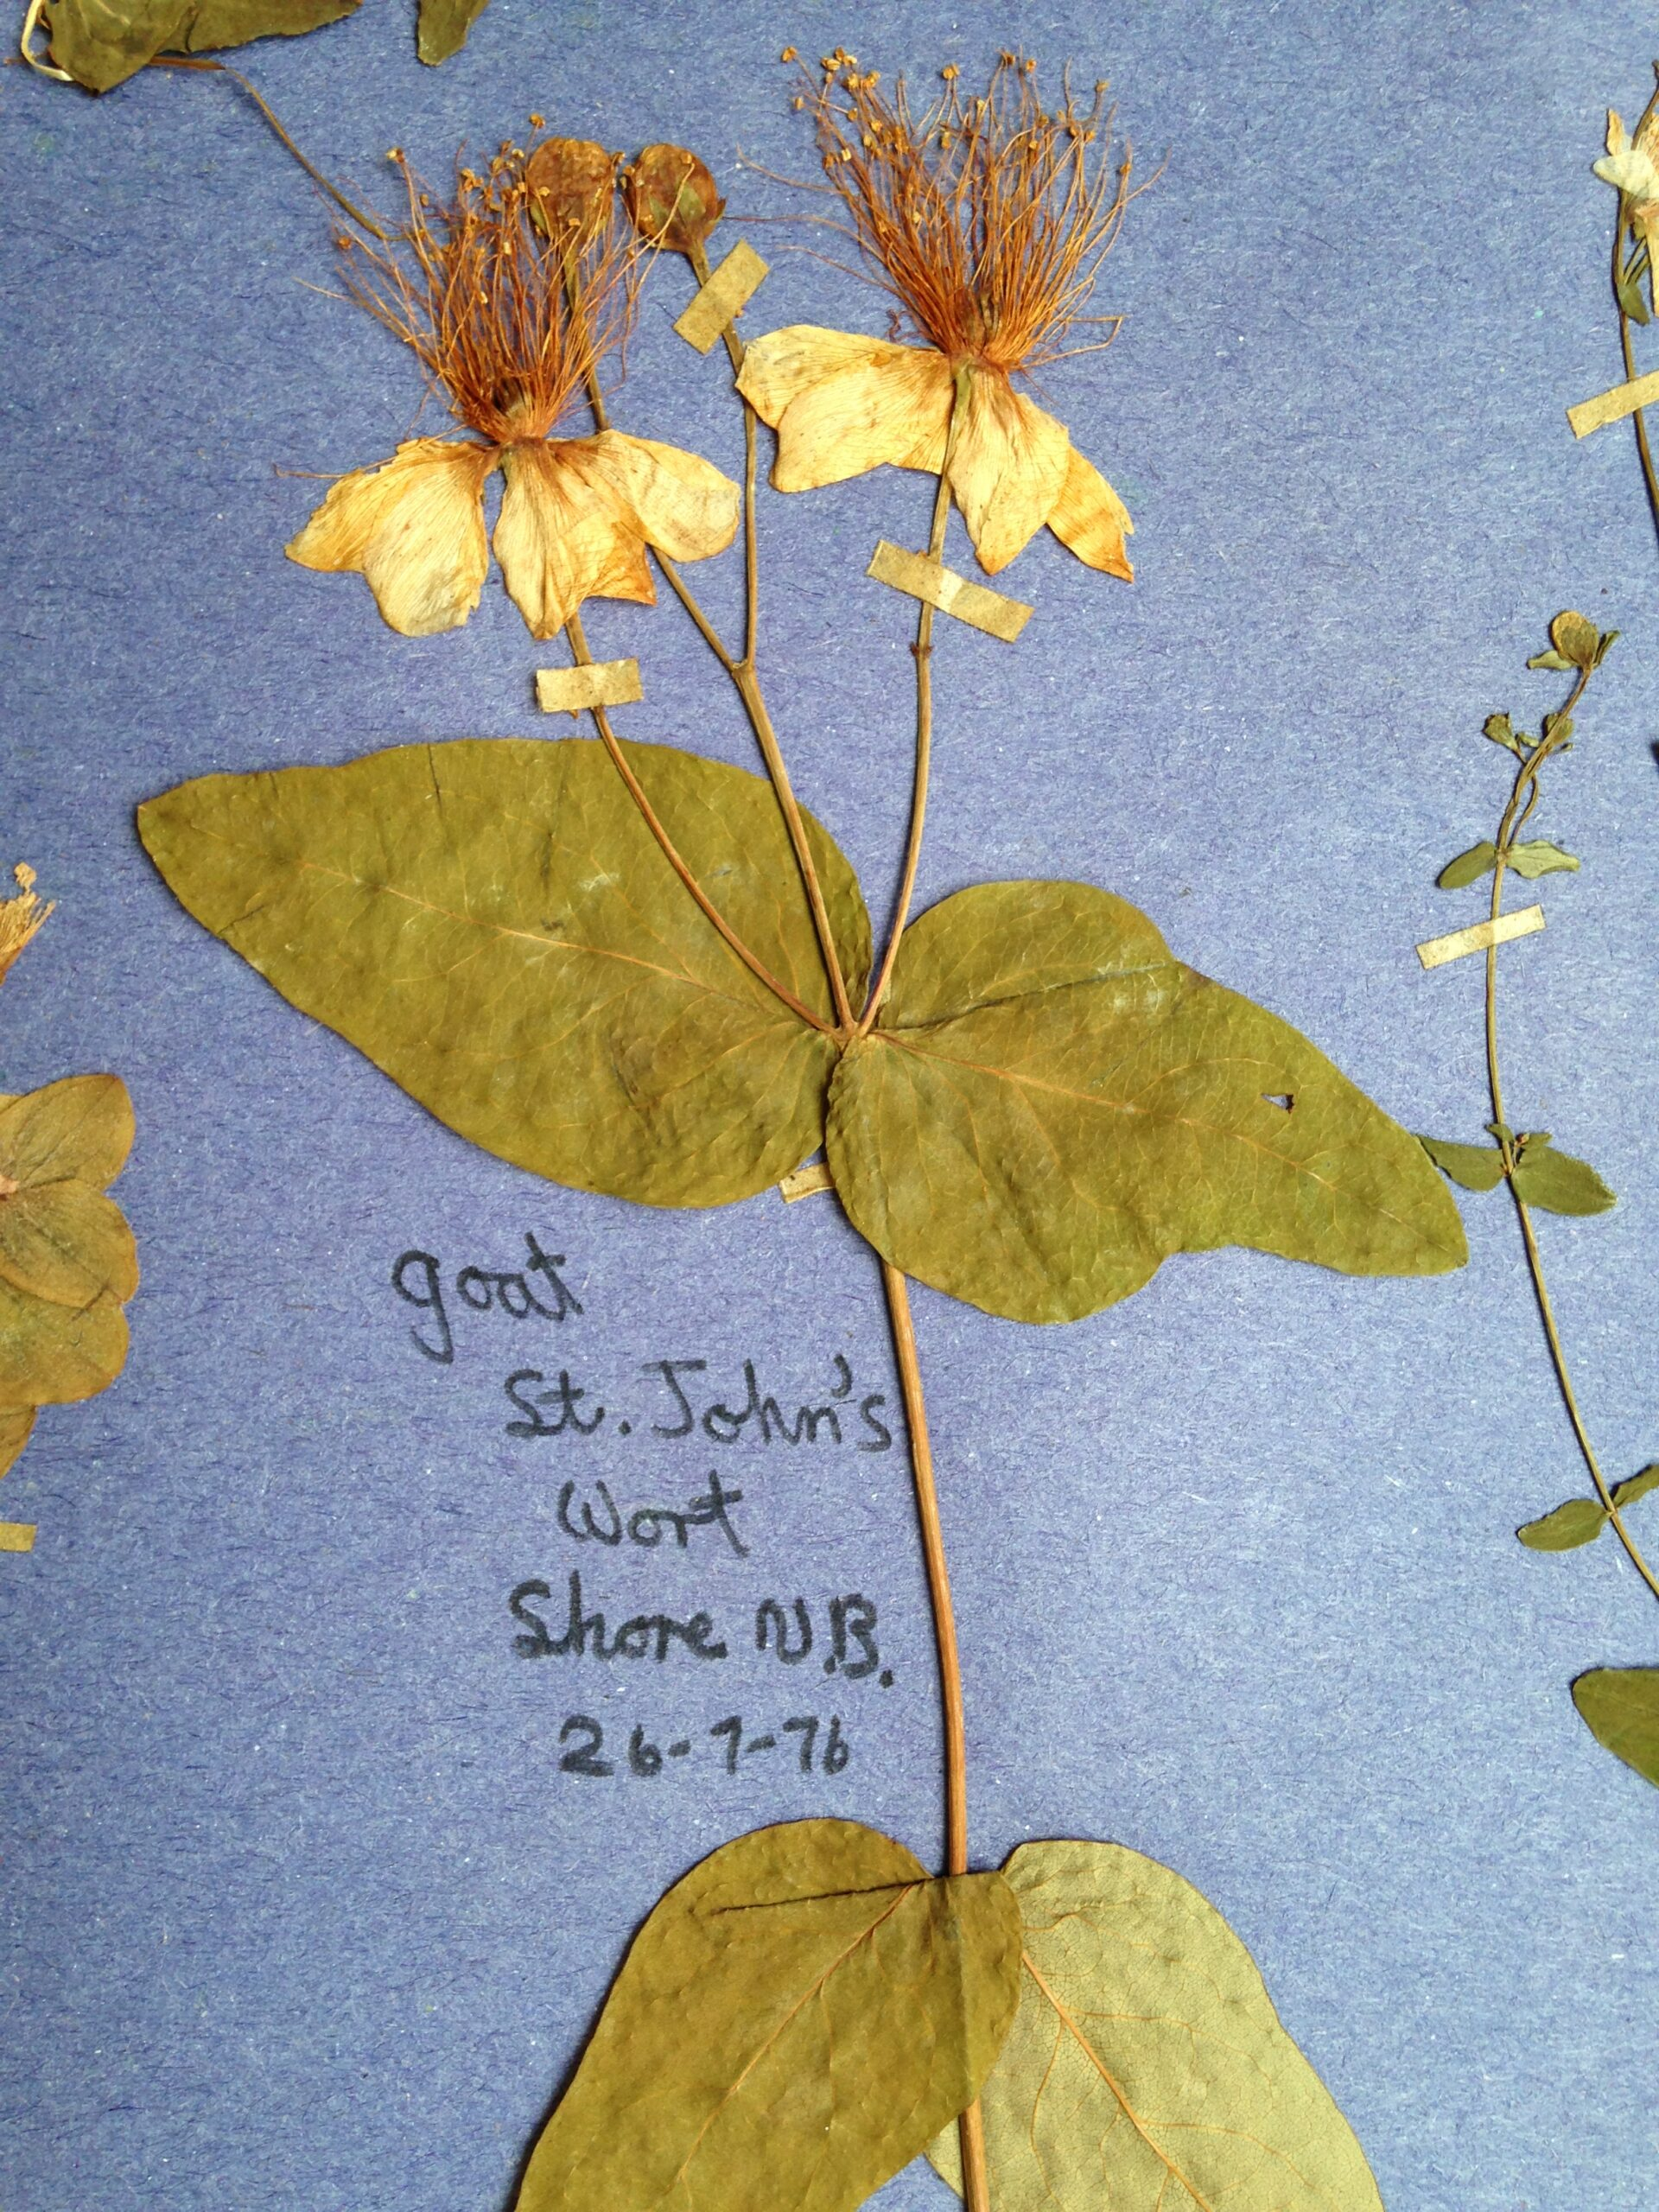 Pressed plant specimen, 'St John's Wort' (also known as Goat Weed), A stem with two fat green leaves at the bottom. two further up and two yellow flower heards